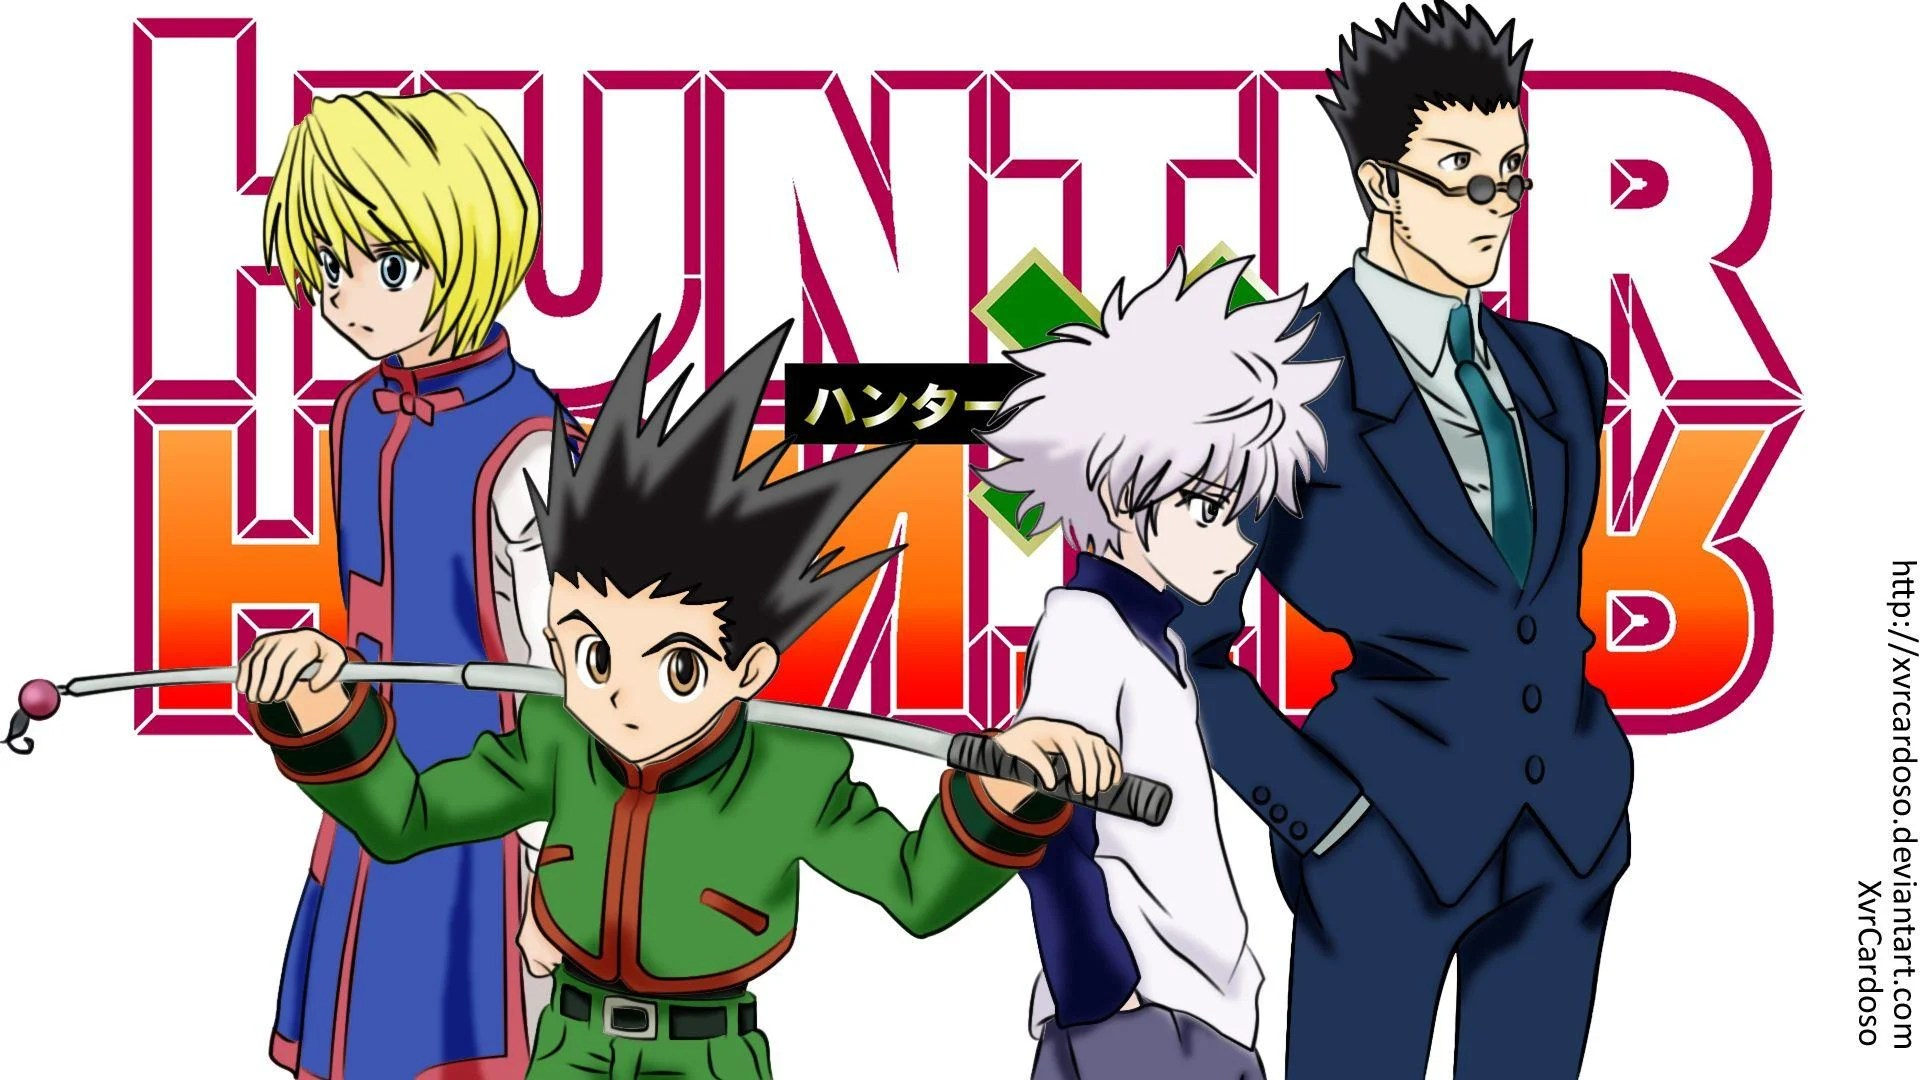 This subreddit is dedicated to the japanese manga and anime series hunter x hunter, written by … Hunter X Hunter Wallpapers - Wallpaper Cave